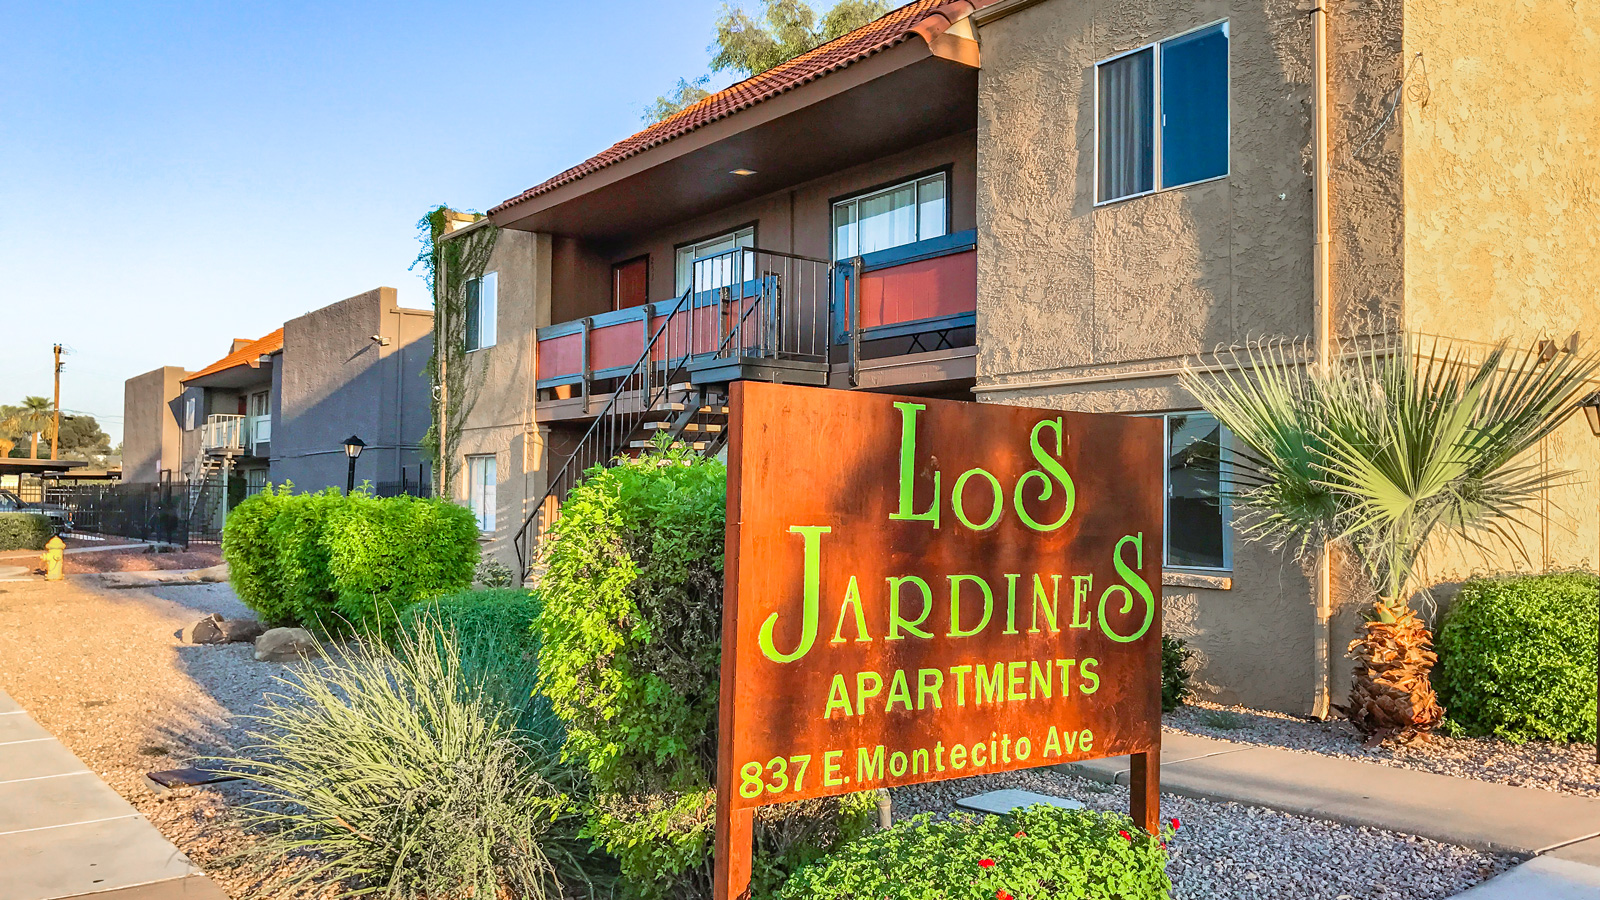 Los Jardines | 837 East Montecito Avenue, Phoenix, AZ 85014 | 28 Units | Built in 1981 | $2,187,500 | $78,125 Per Unit | $110.49 Per SF